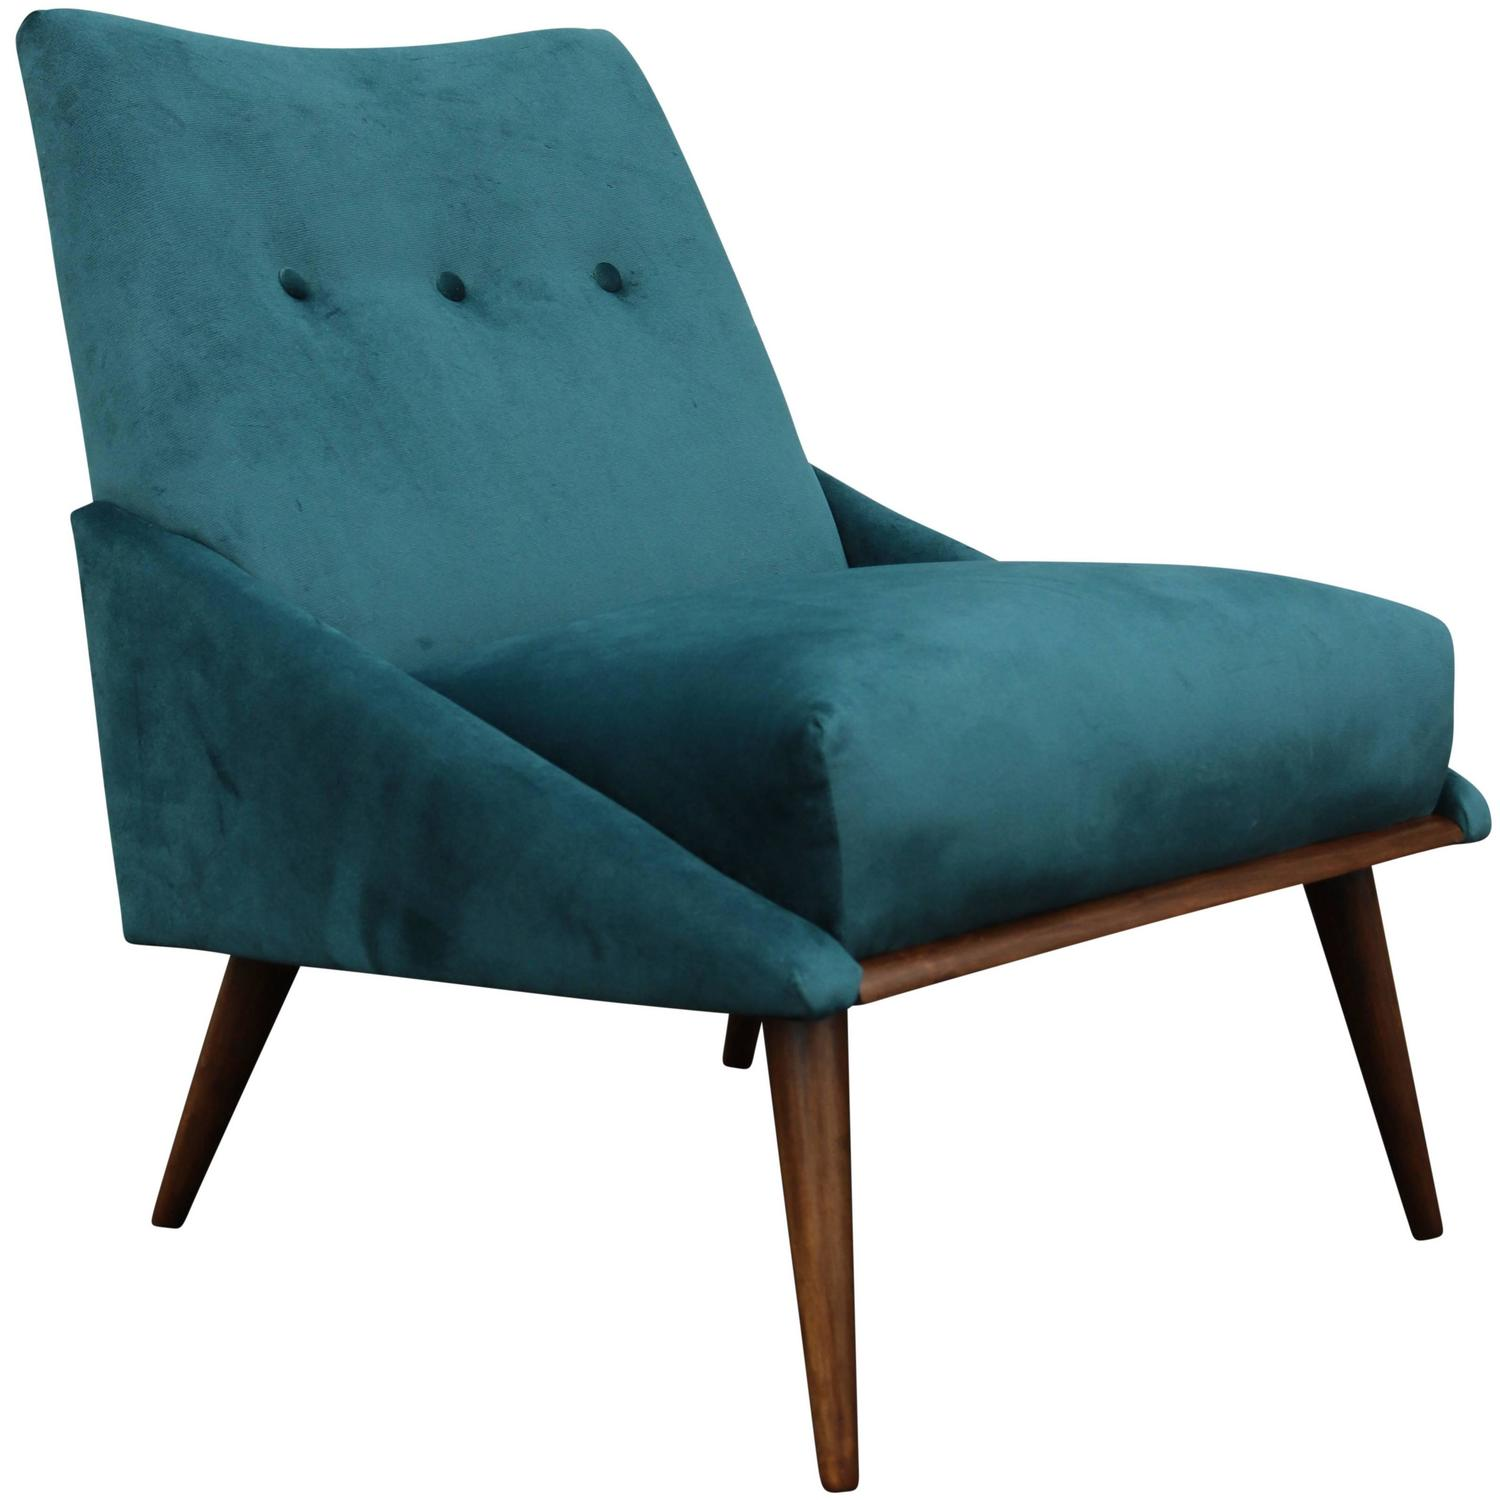 Midcentury Chairs Peacock Velvet Mid Century Modern Chair At 1stdibs